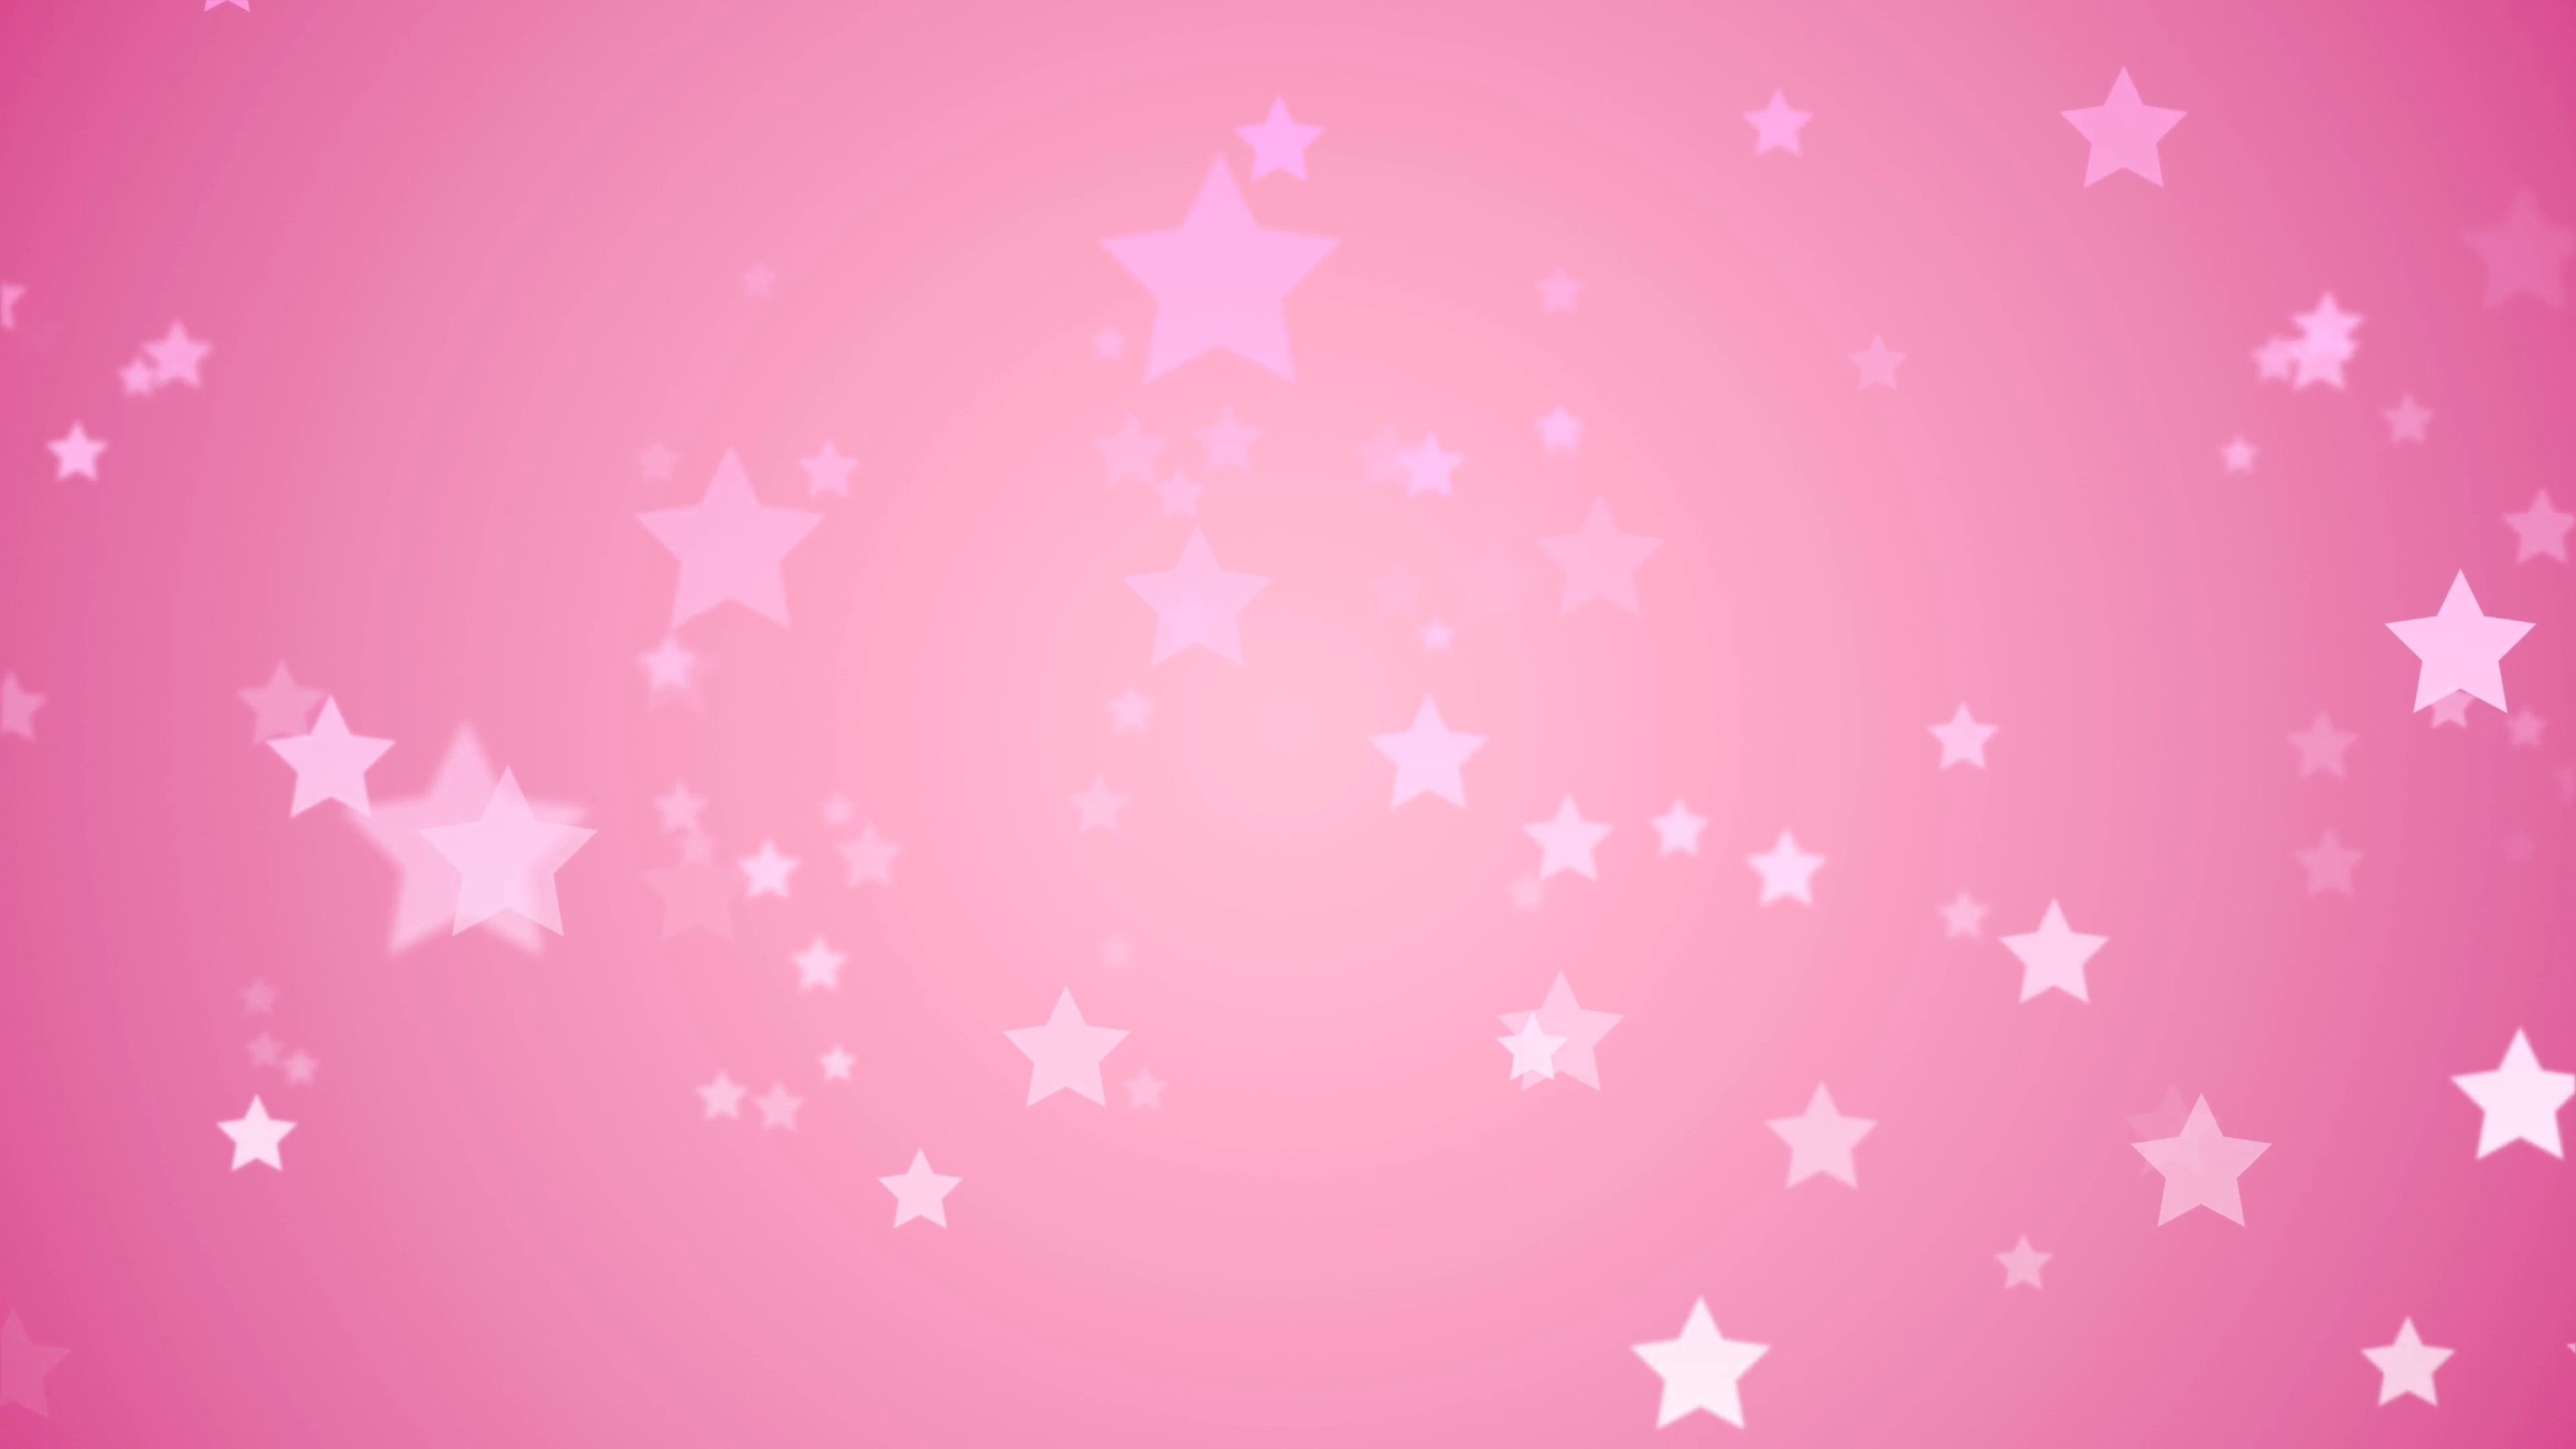 floating light pink stars fade in and out against a pink backdrop